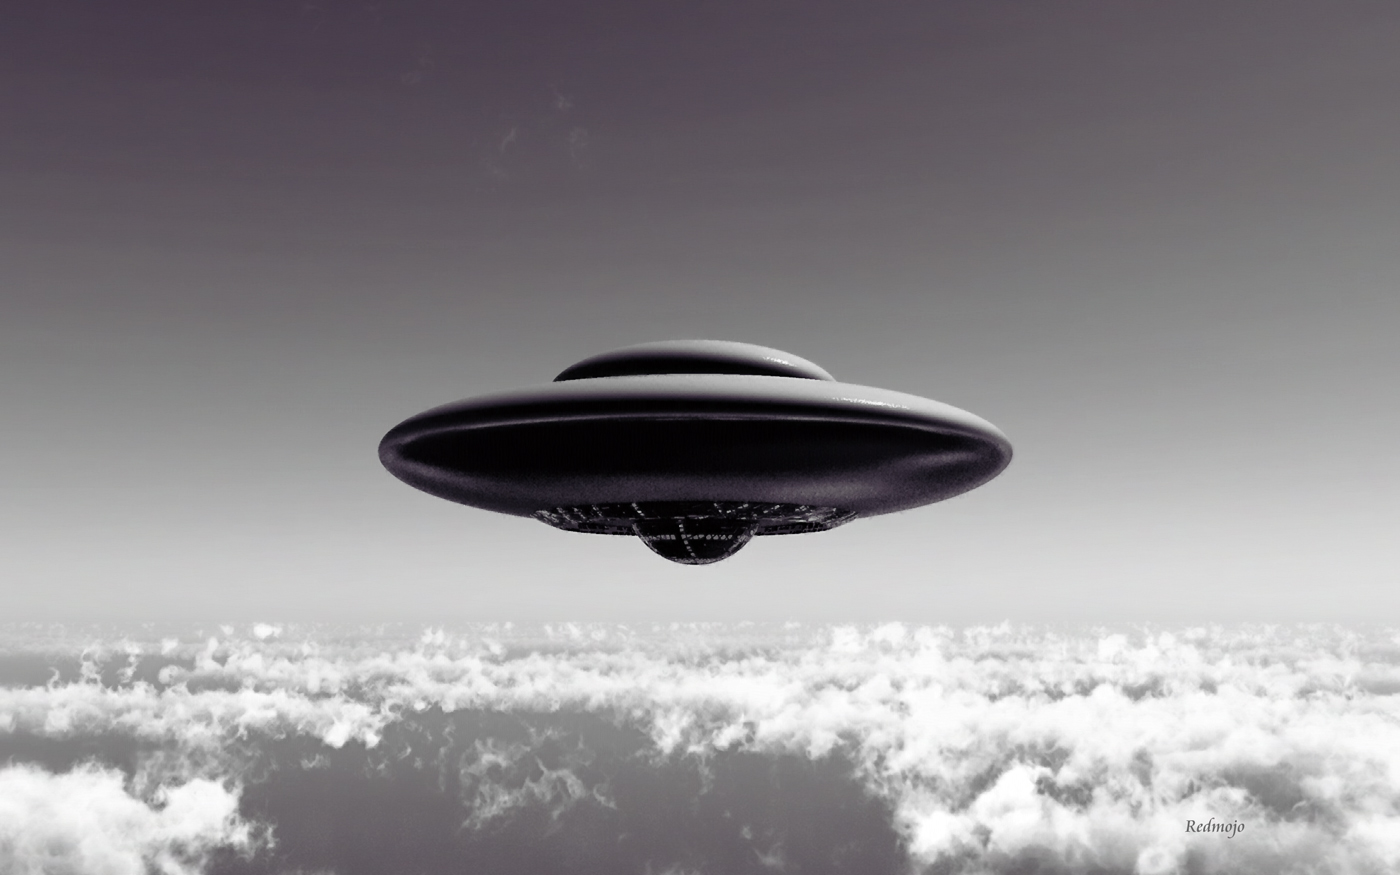 UFO Sighting of the Day – May 15, 2020